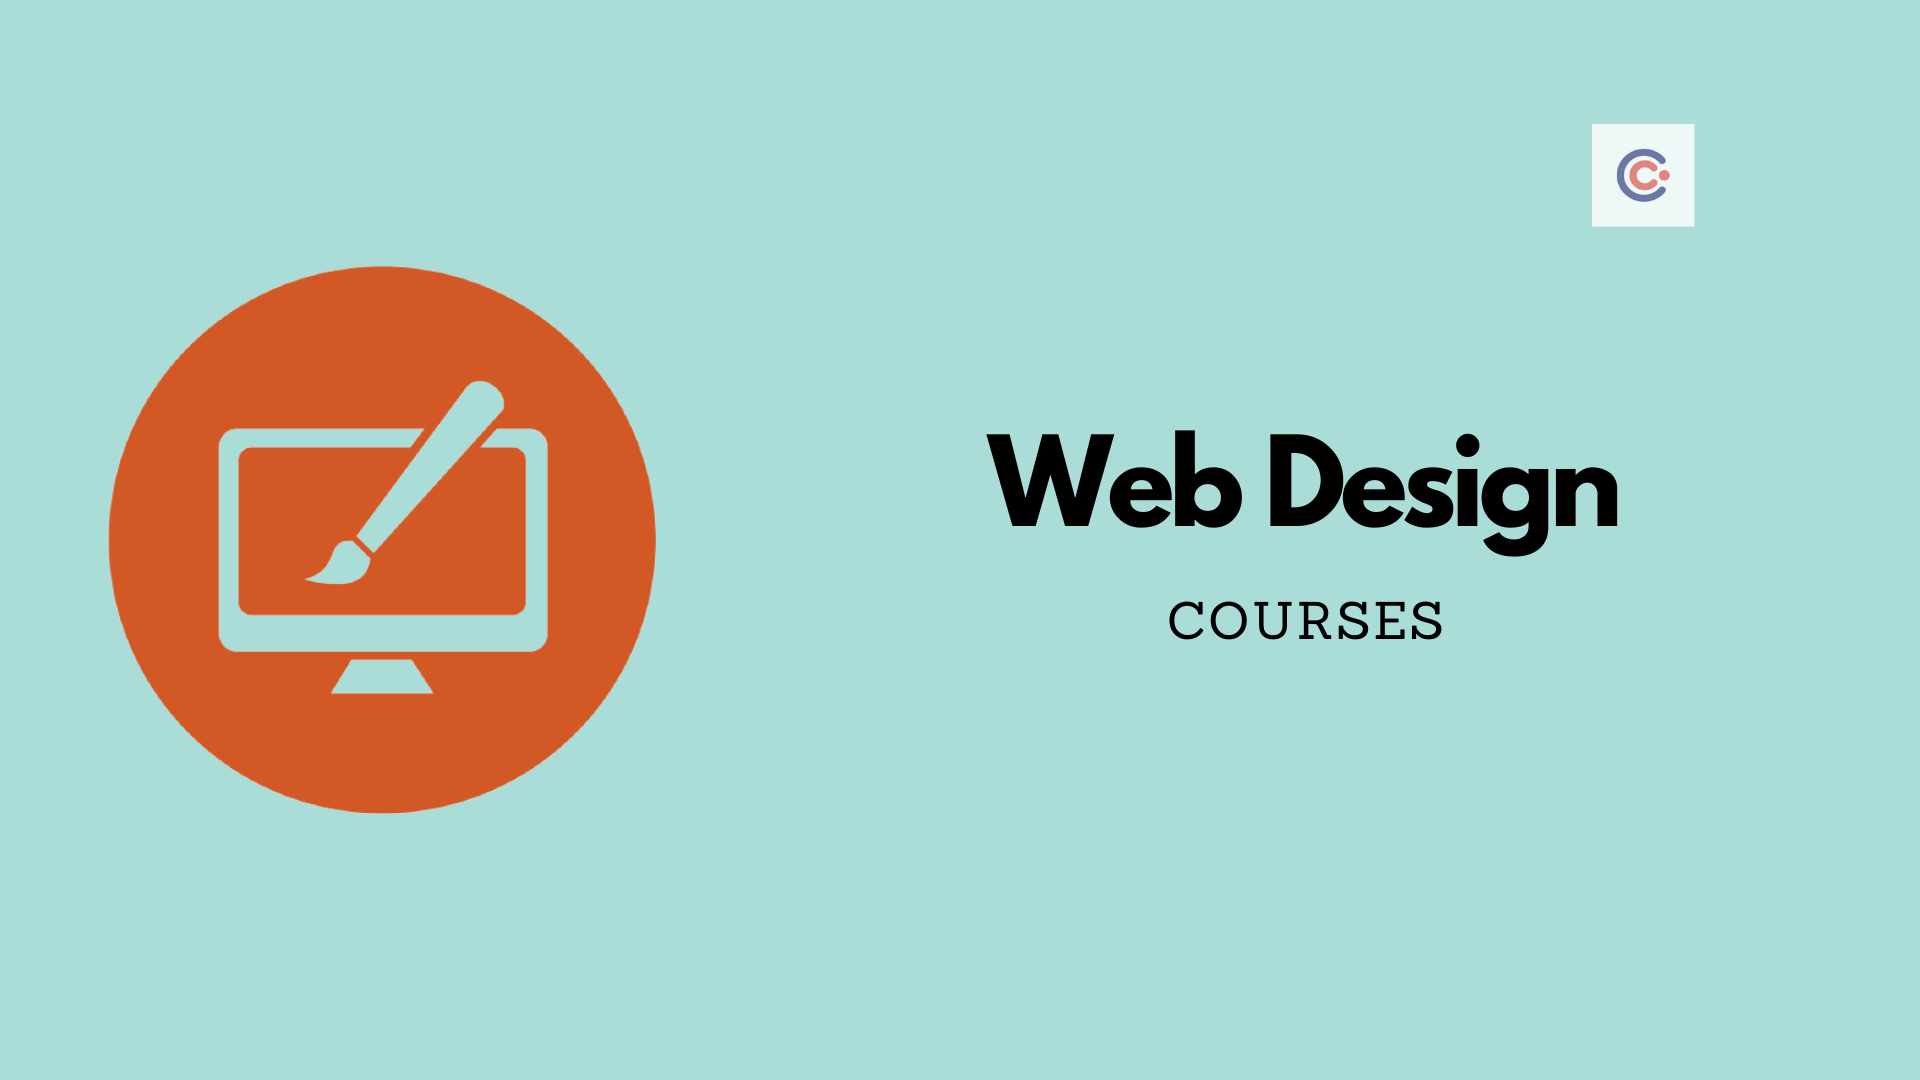 10 Best Web Design Courses - Learn Web Designing Online